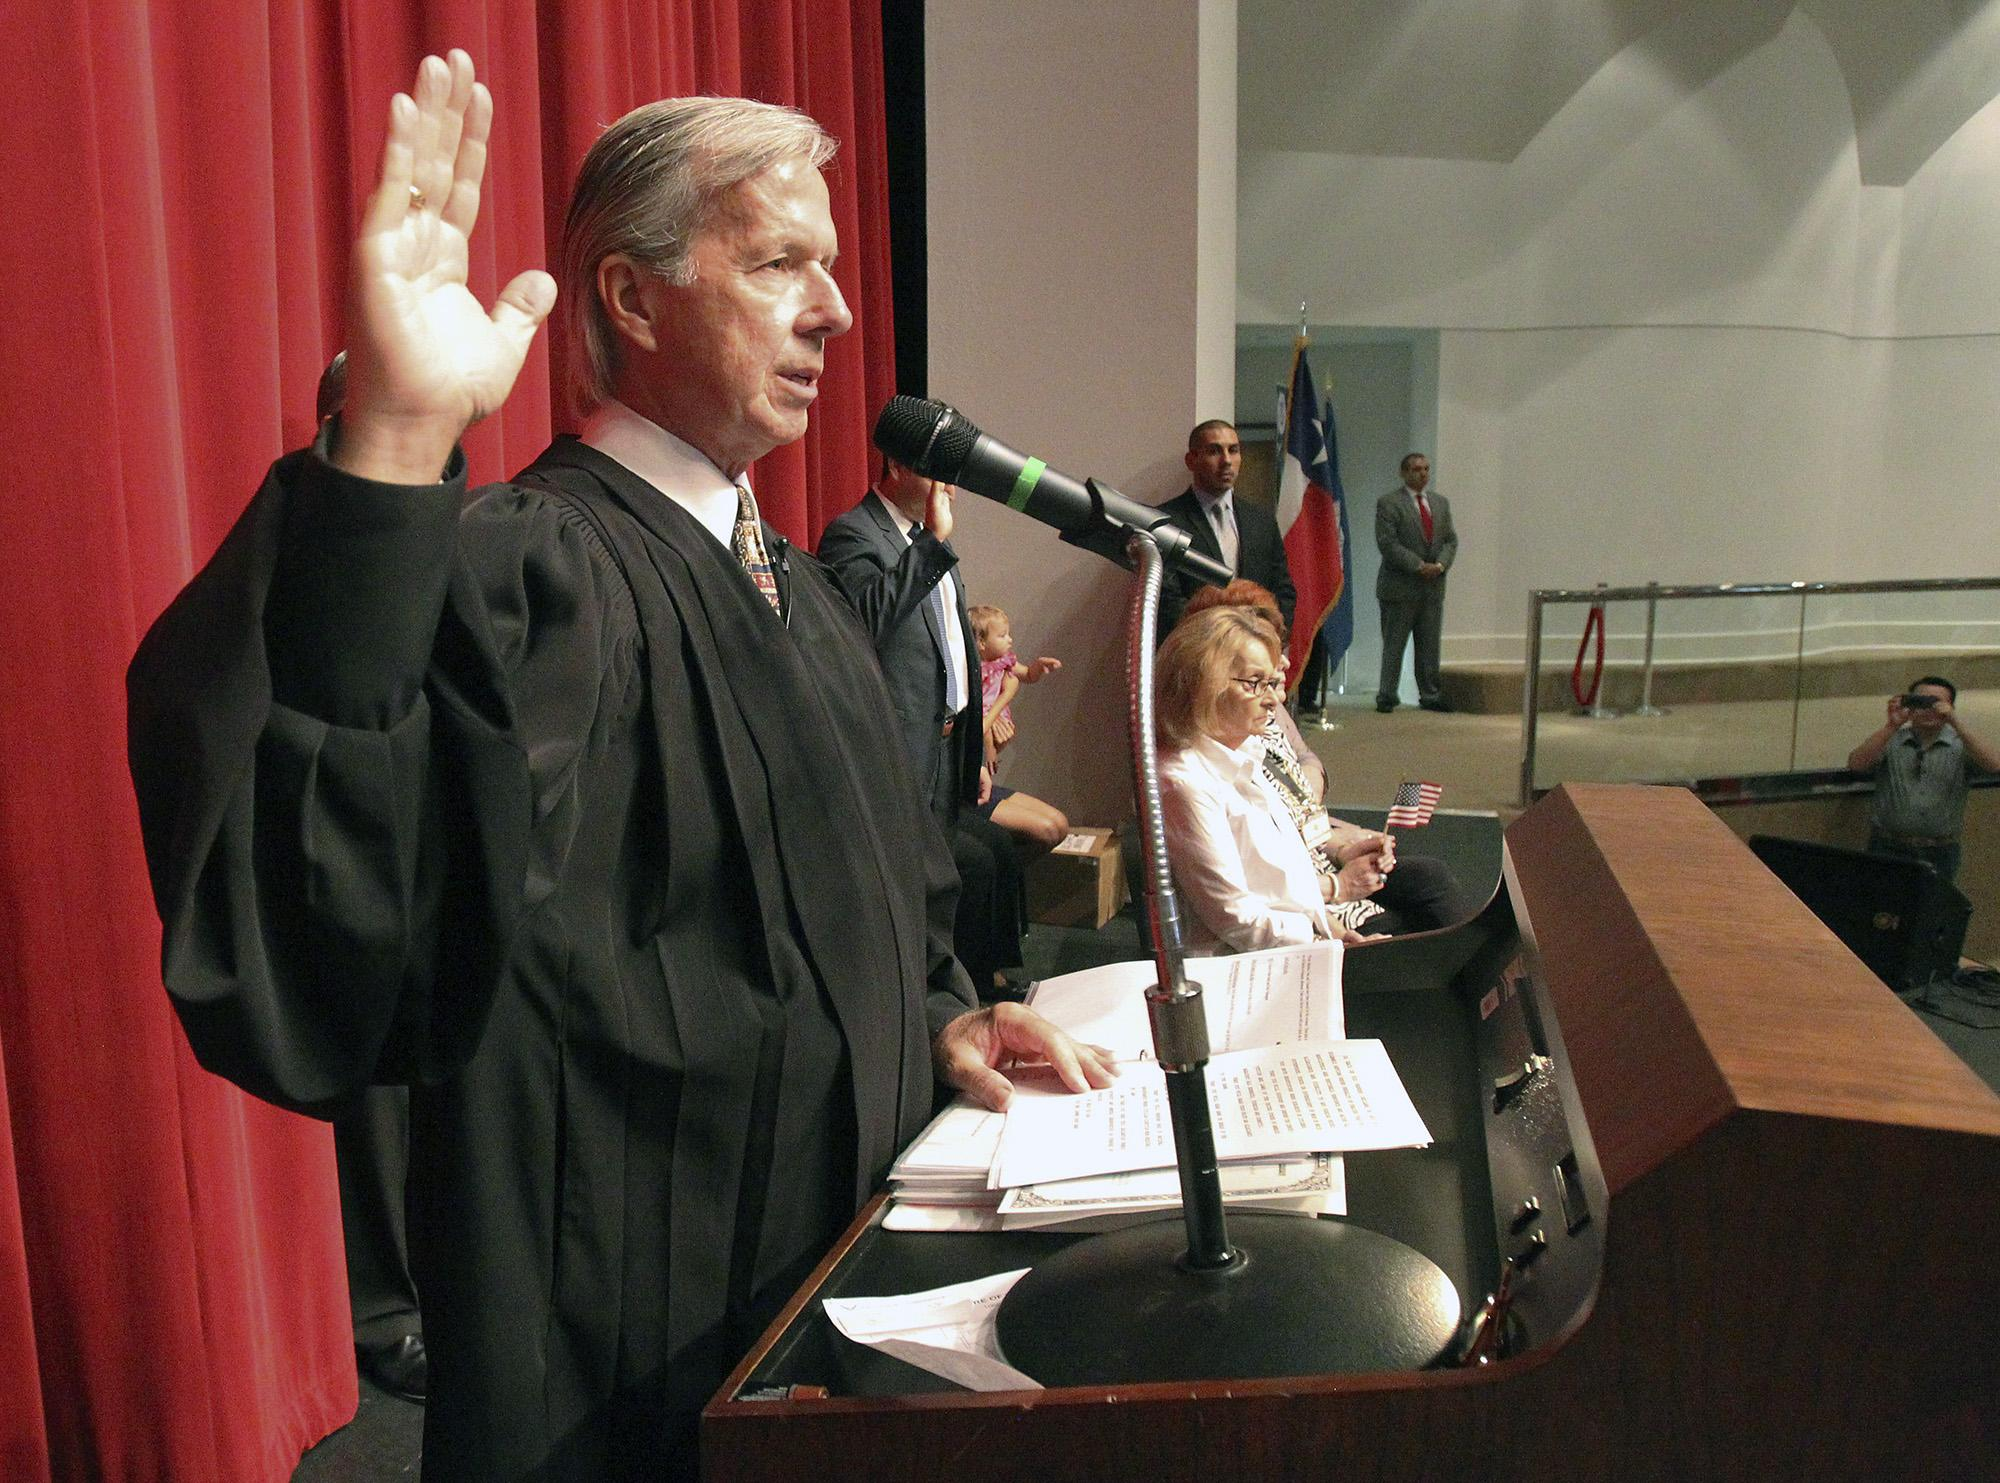 Sa Judge Under Fire For Telling New Citizens To Accept